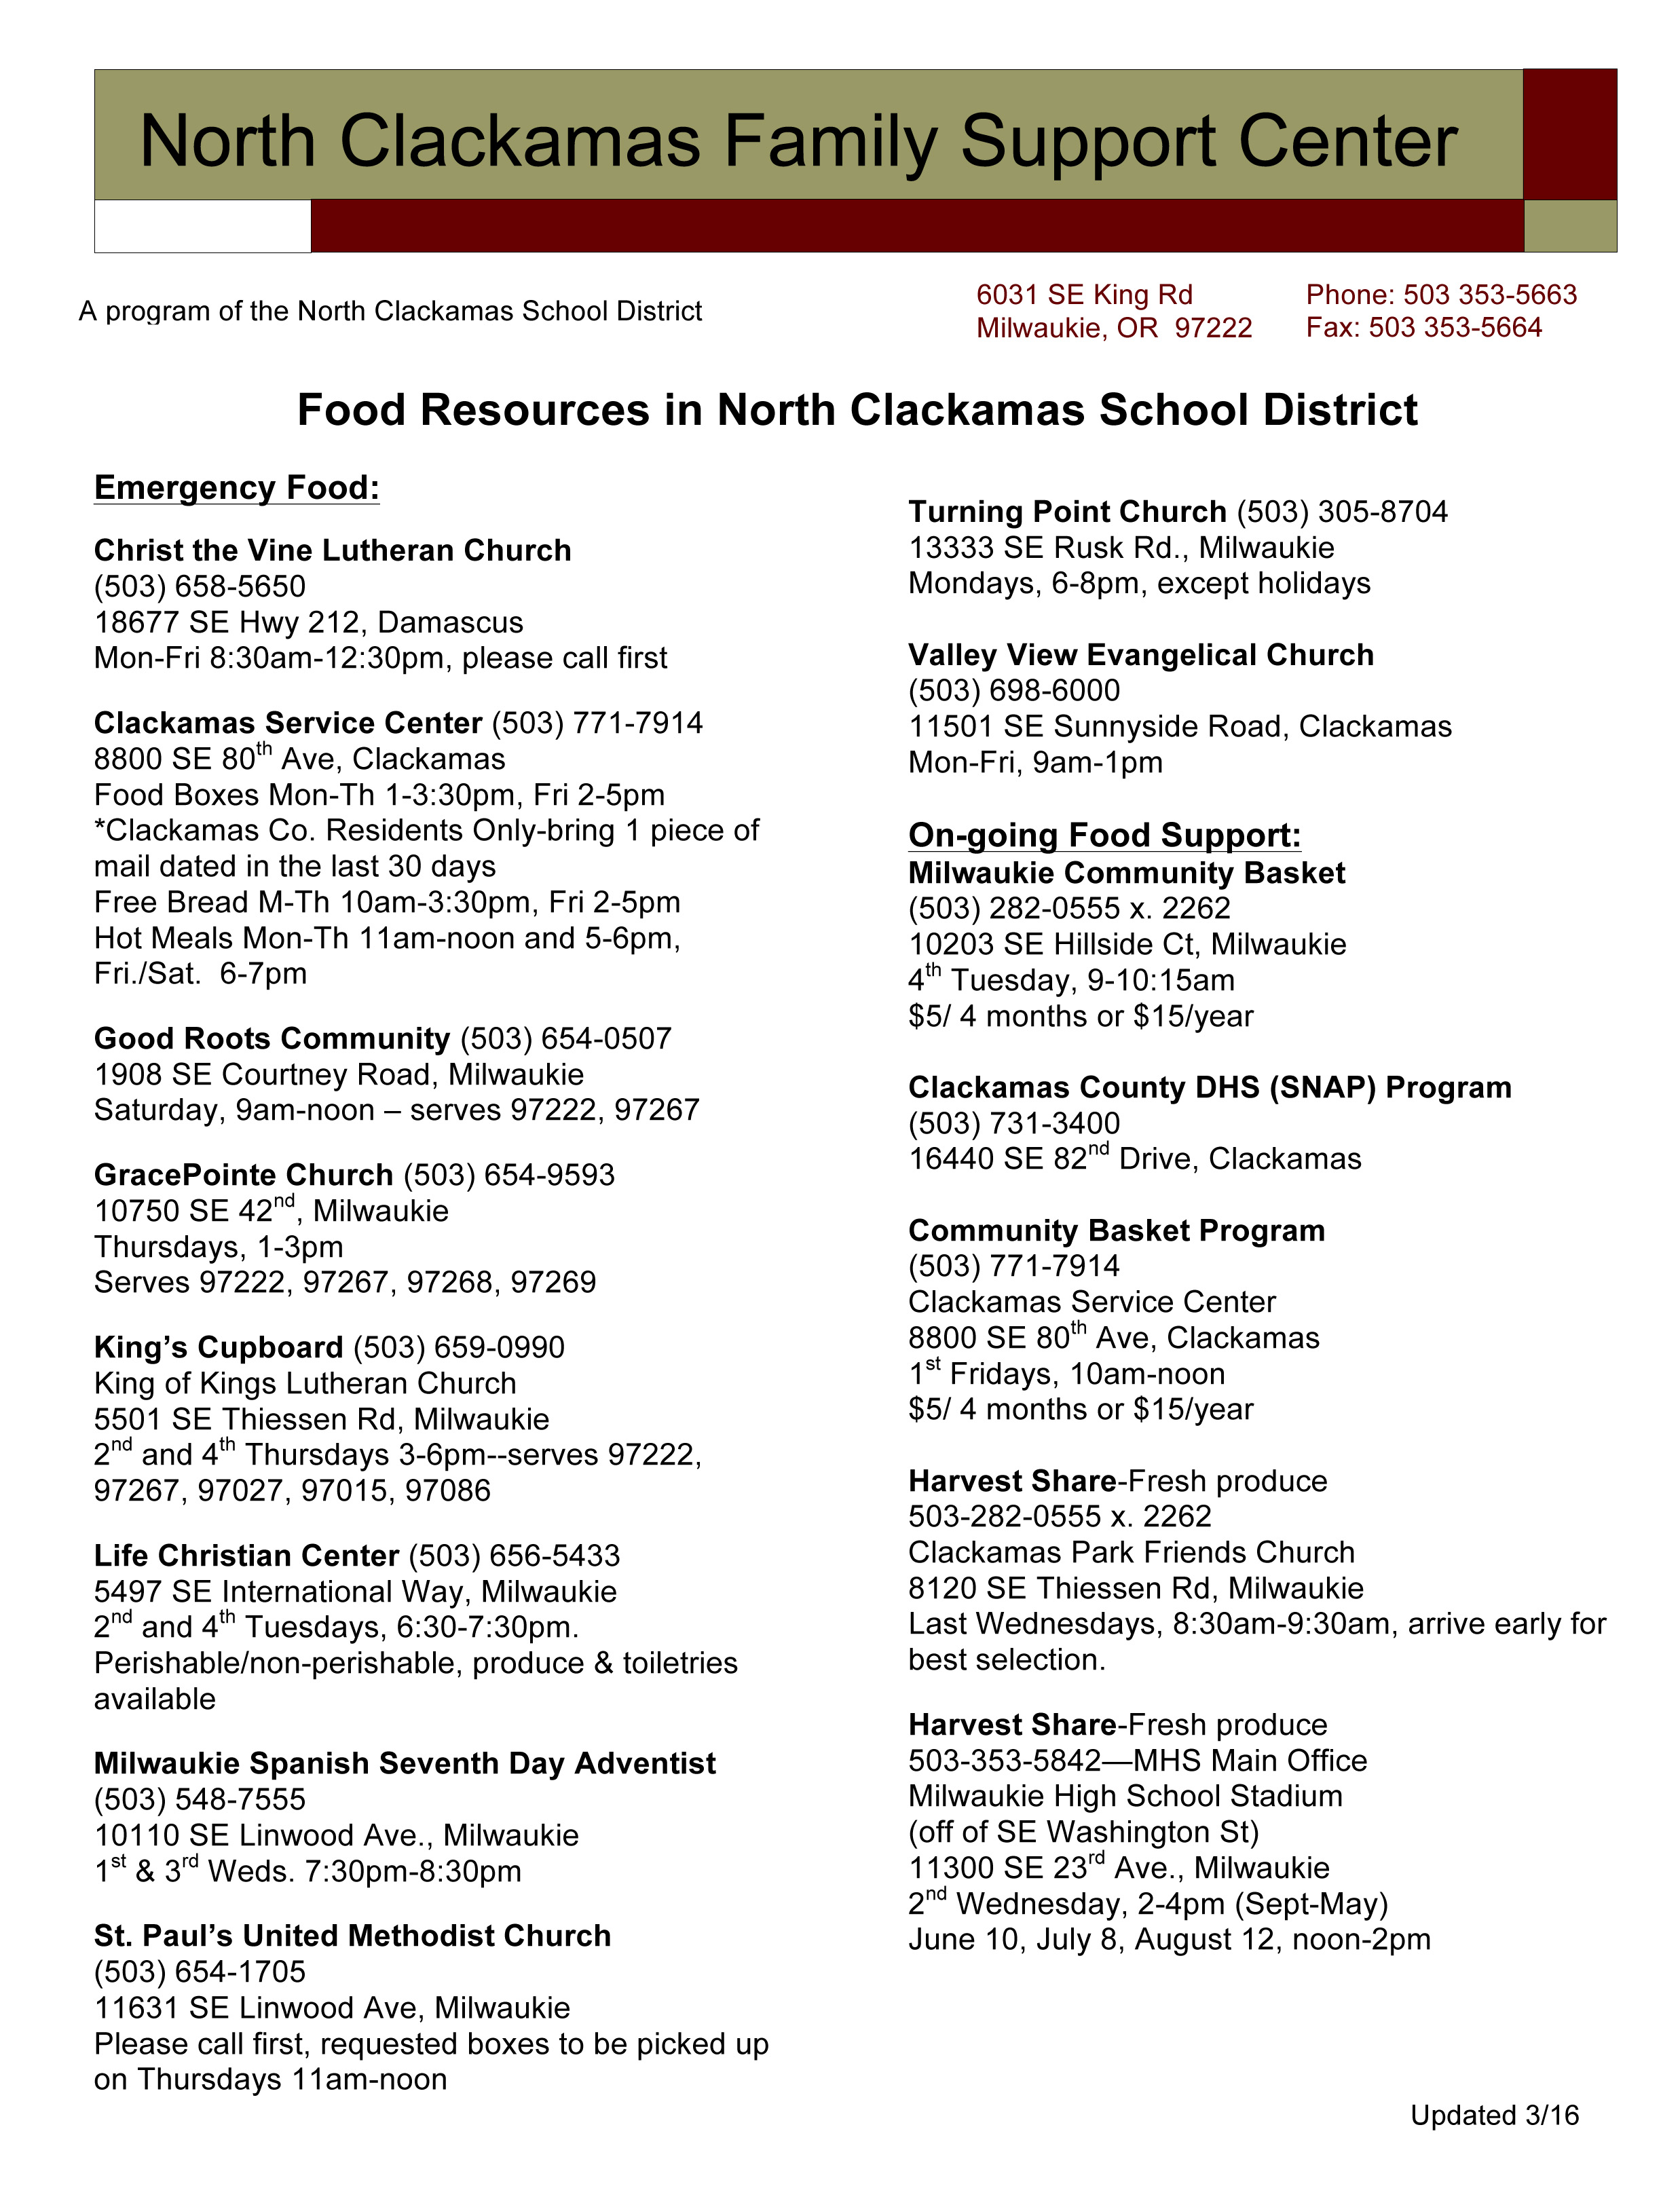 Microsoft Word - Food Resources.doc